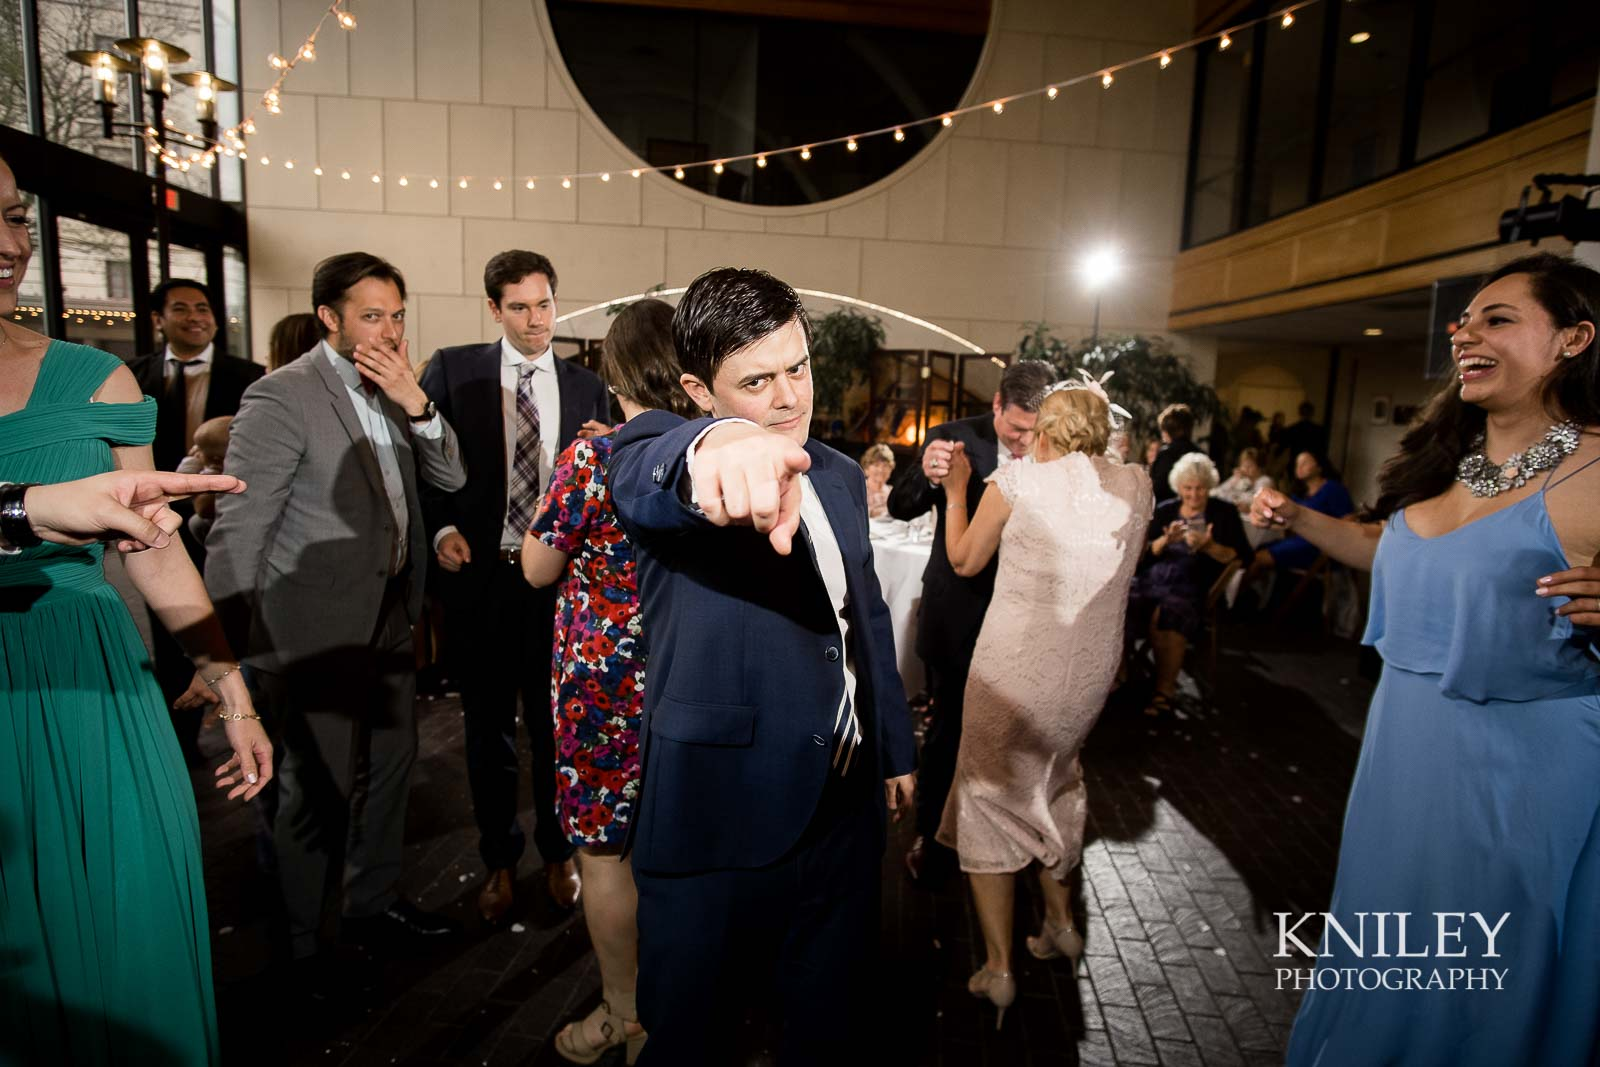 66-Max-of-Eastman-Wedding-and-Reception-Rochester-NY-Kniley-Photography.jpg